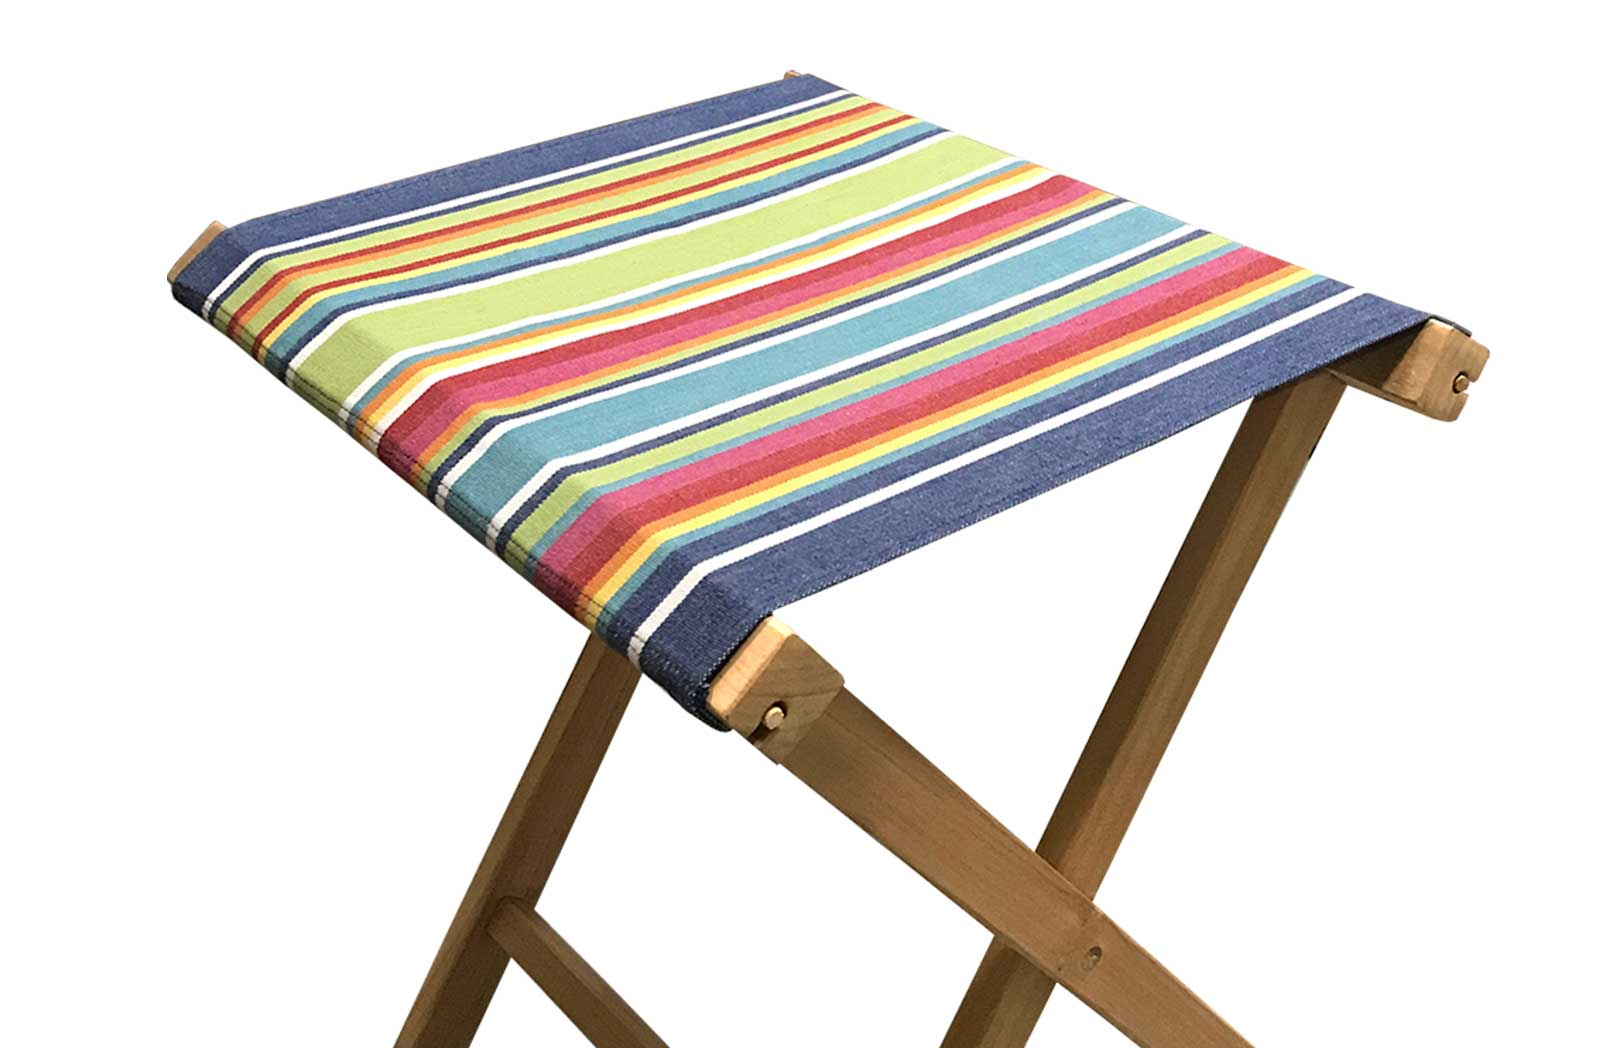 blue, green, red - Portable Folding Stools with Striped Seats